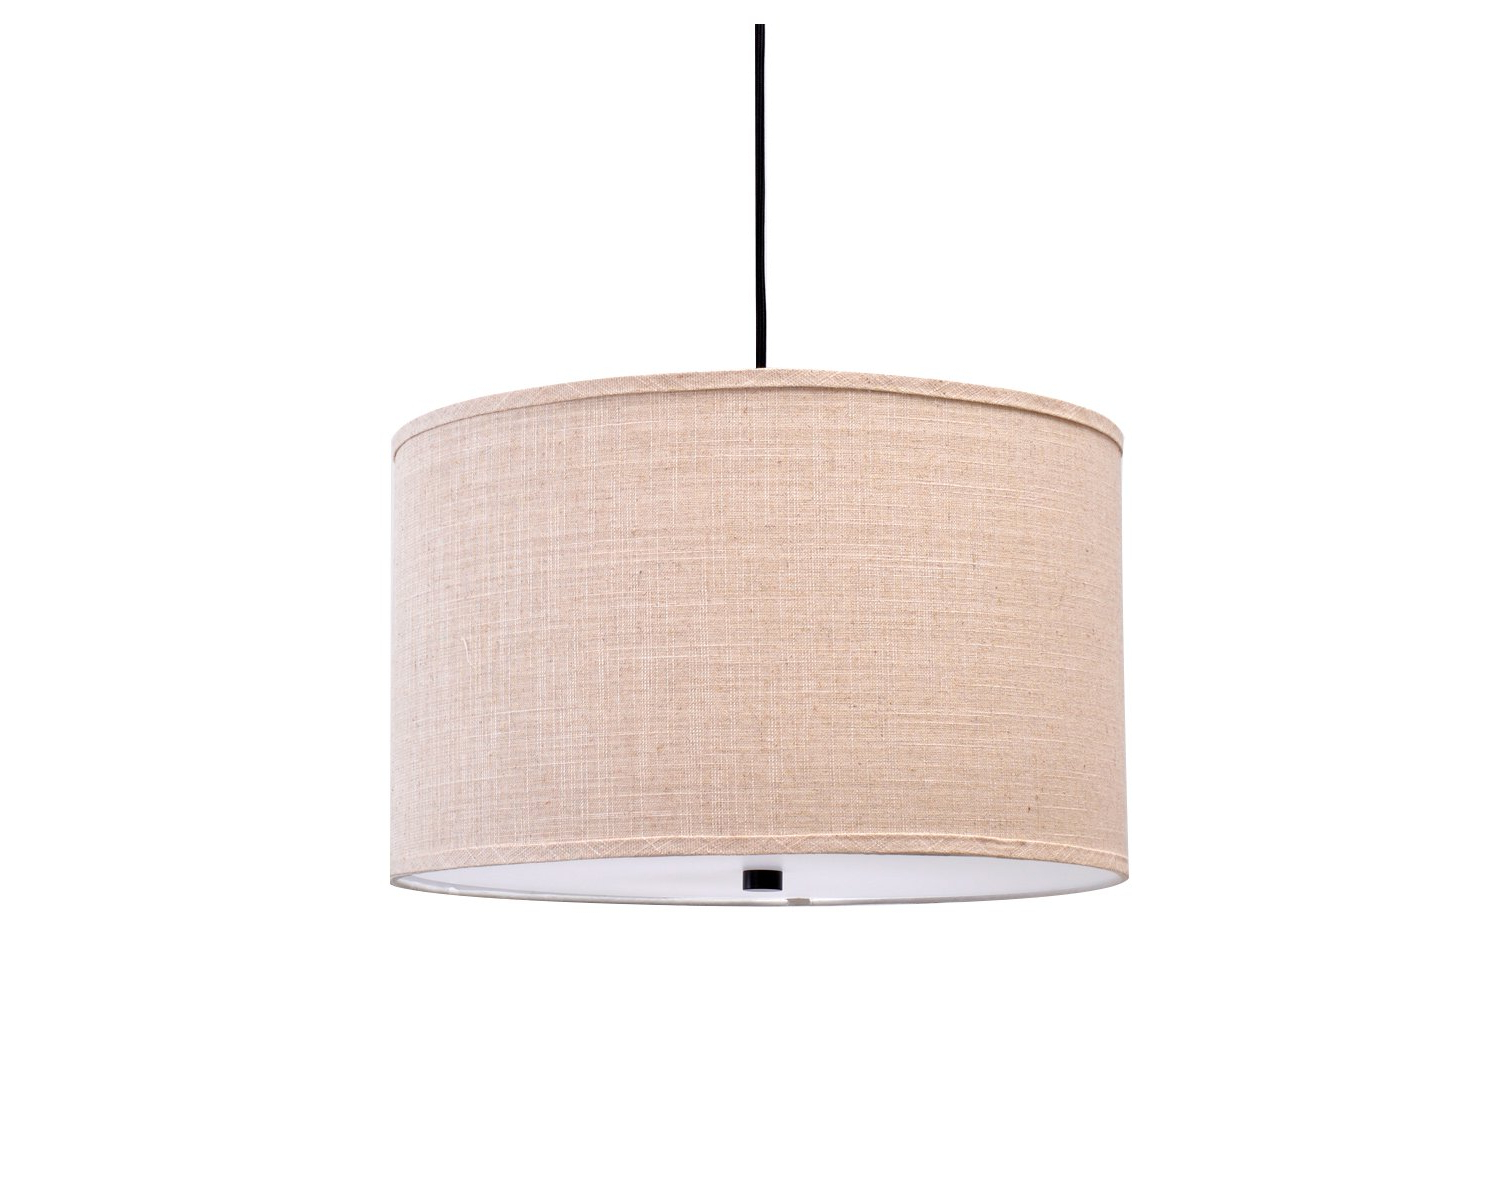 Catalina Lighting 19867 001 Traditional 3 Fabric Pendant Ceiling Light With  Diffuser On Bottom, 18 Inch, Bronze With Fashionable Kasey 3 Light Single Drum Pendants (View 3 of 25)